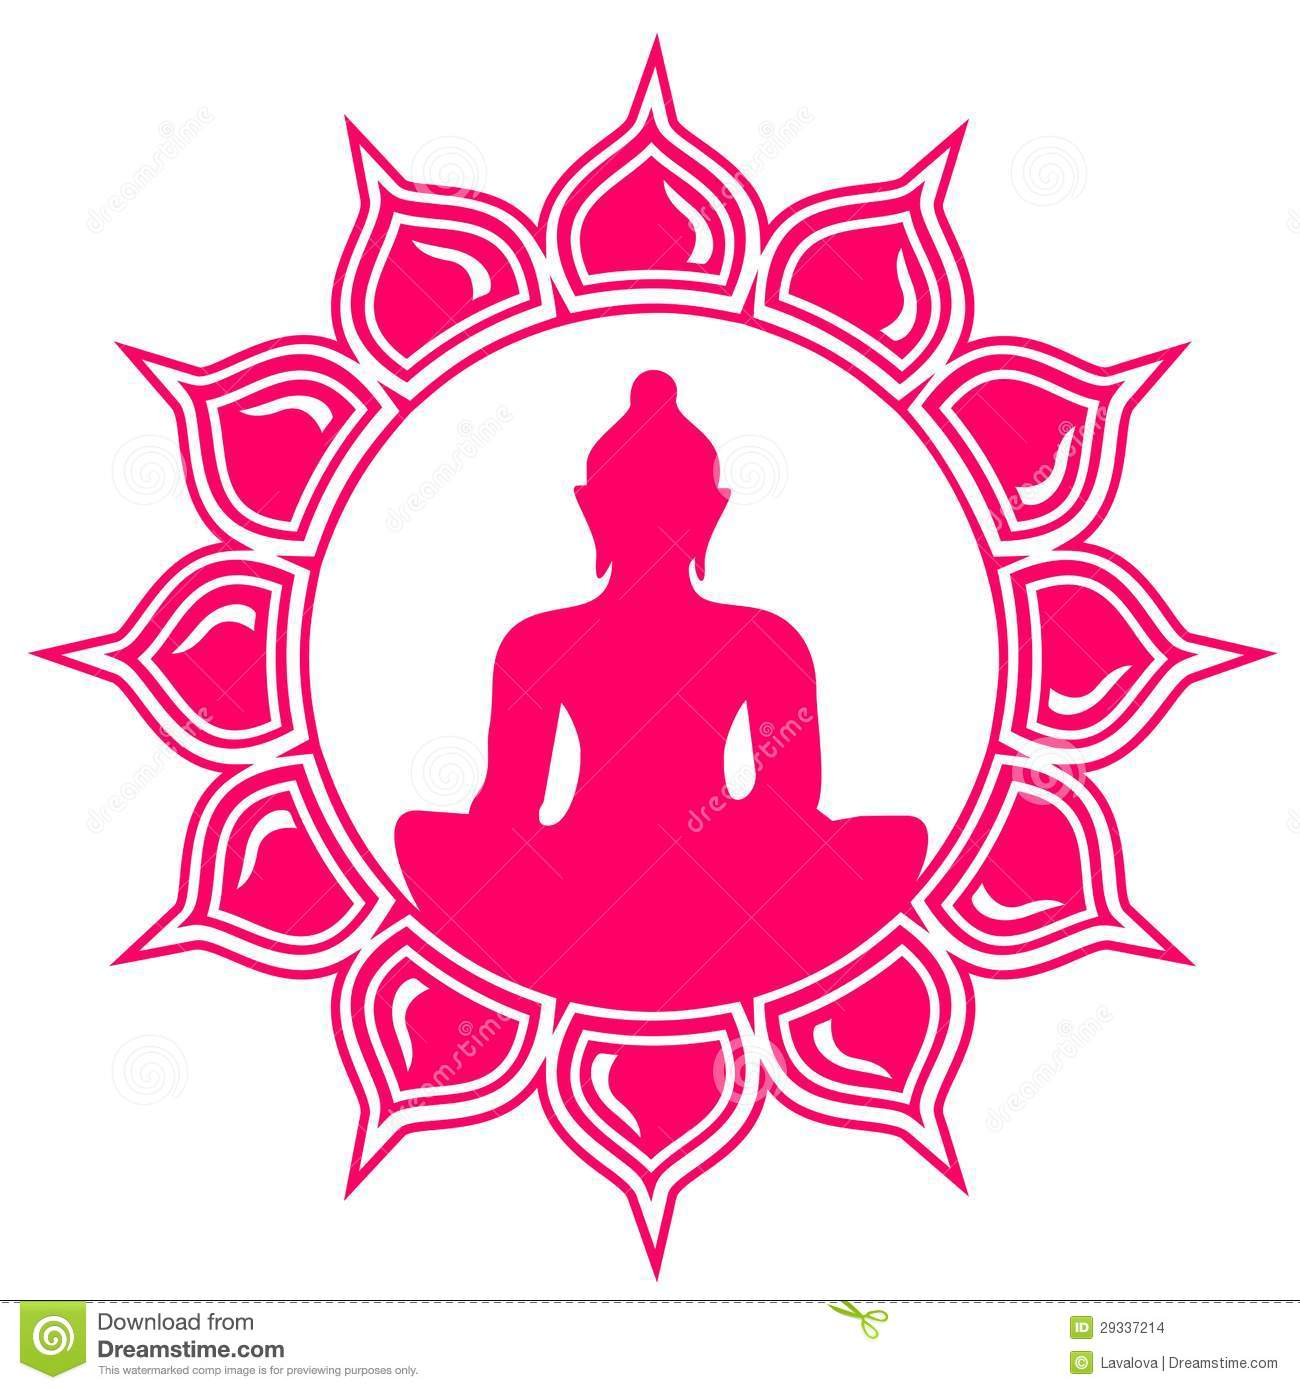 Buddha clipart lotuscolor png royalty free Lotus Flower Clip Art Images | Top Collection of different types of ... png royalty free